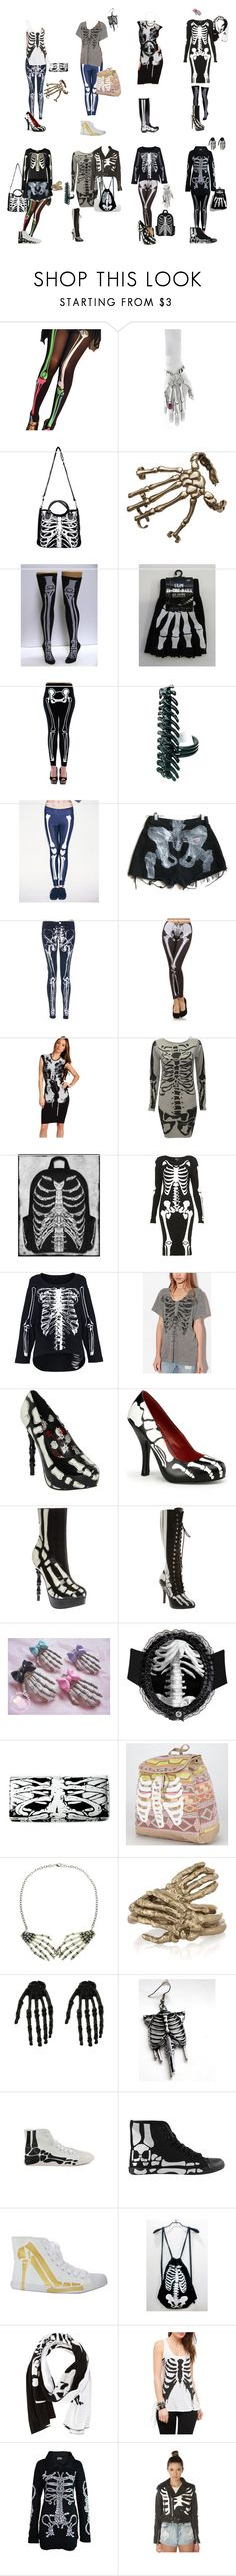 """Skeleton"" by caprizy ❤ liked on Polyvore featuring Delettrez, Bernard Delettrez, Iron Fist, McQ by Alexander McQueen, Topshop, Truly Madly Deeply, Hot Topic, Funtasma, T-shirt & Jeans and Be & D"